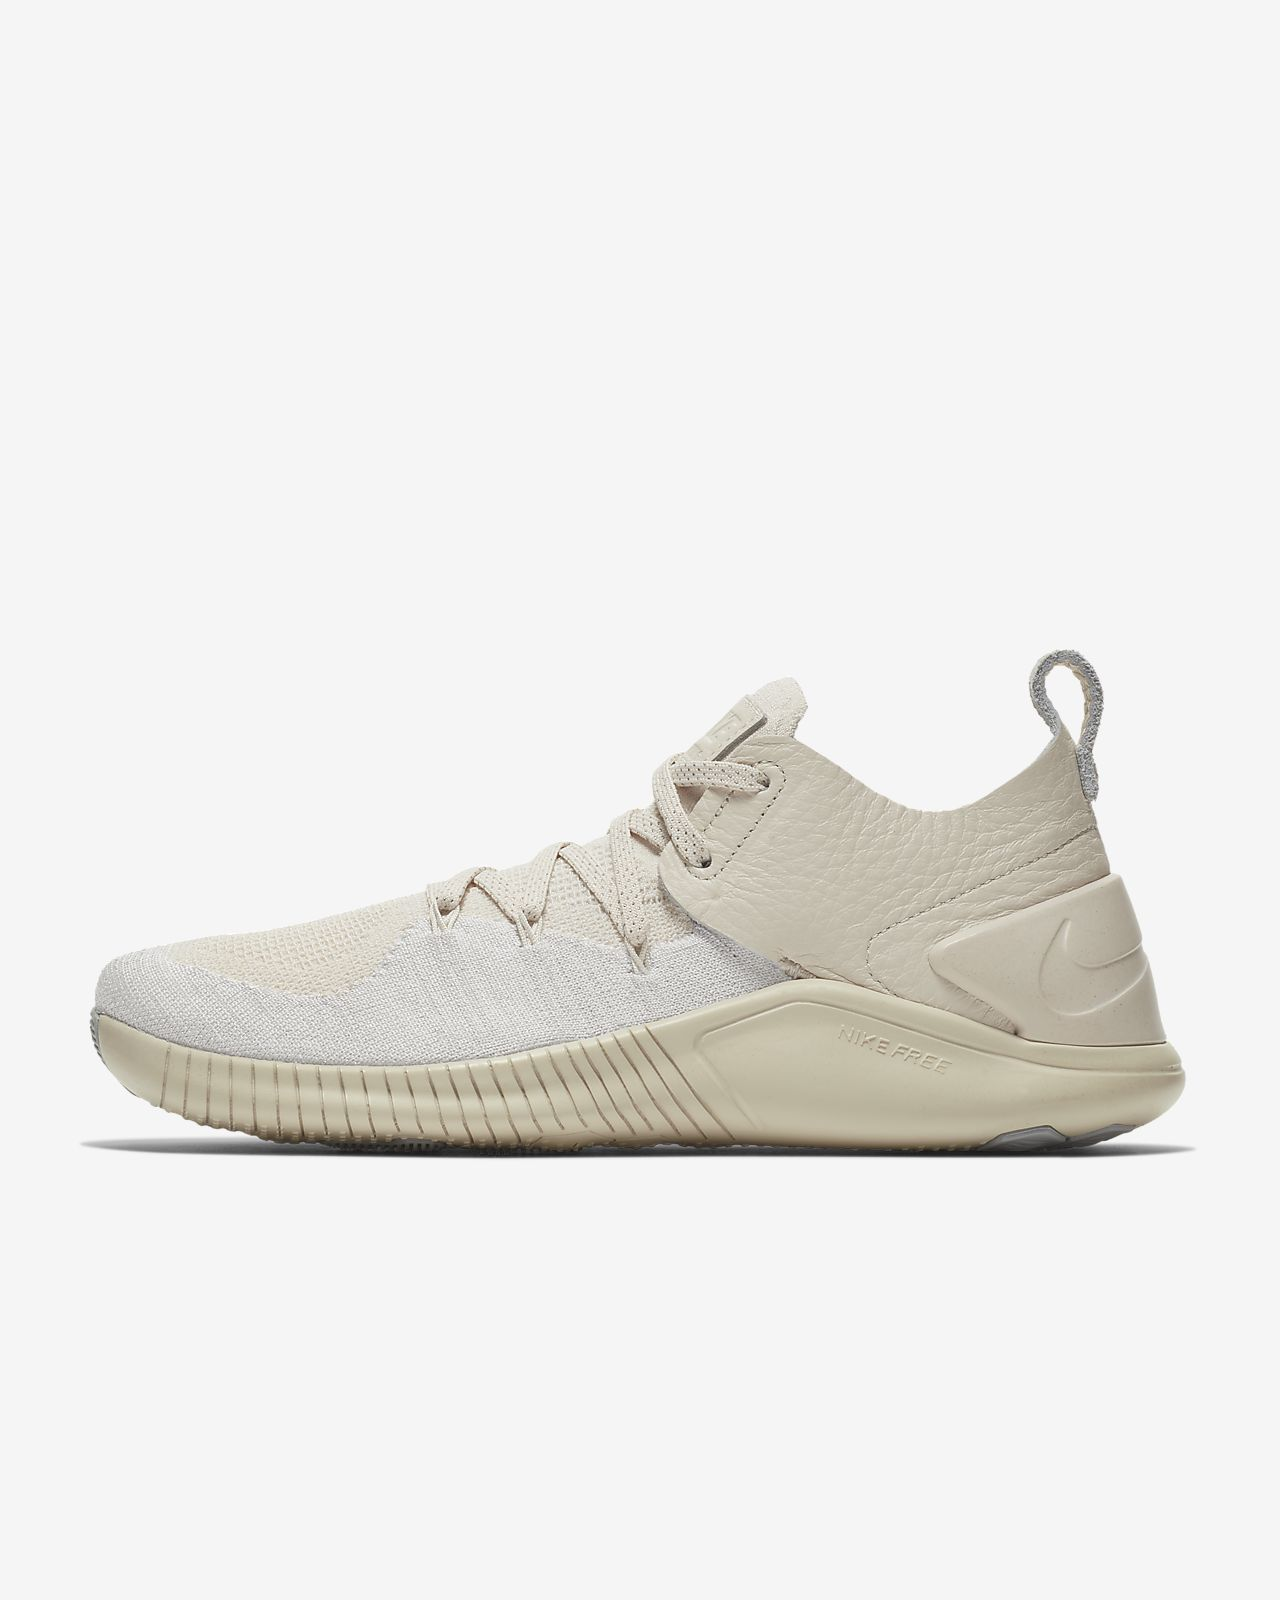 save off 85d16 b1aa6 ... Chaussure de training Nike Free TR Flyknit 3 Champagne pour Femme